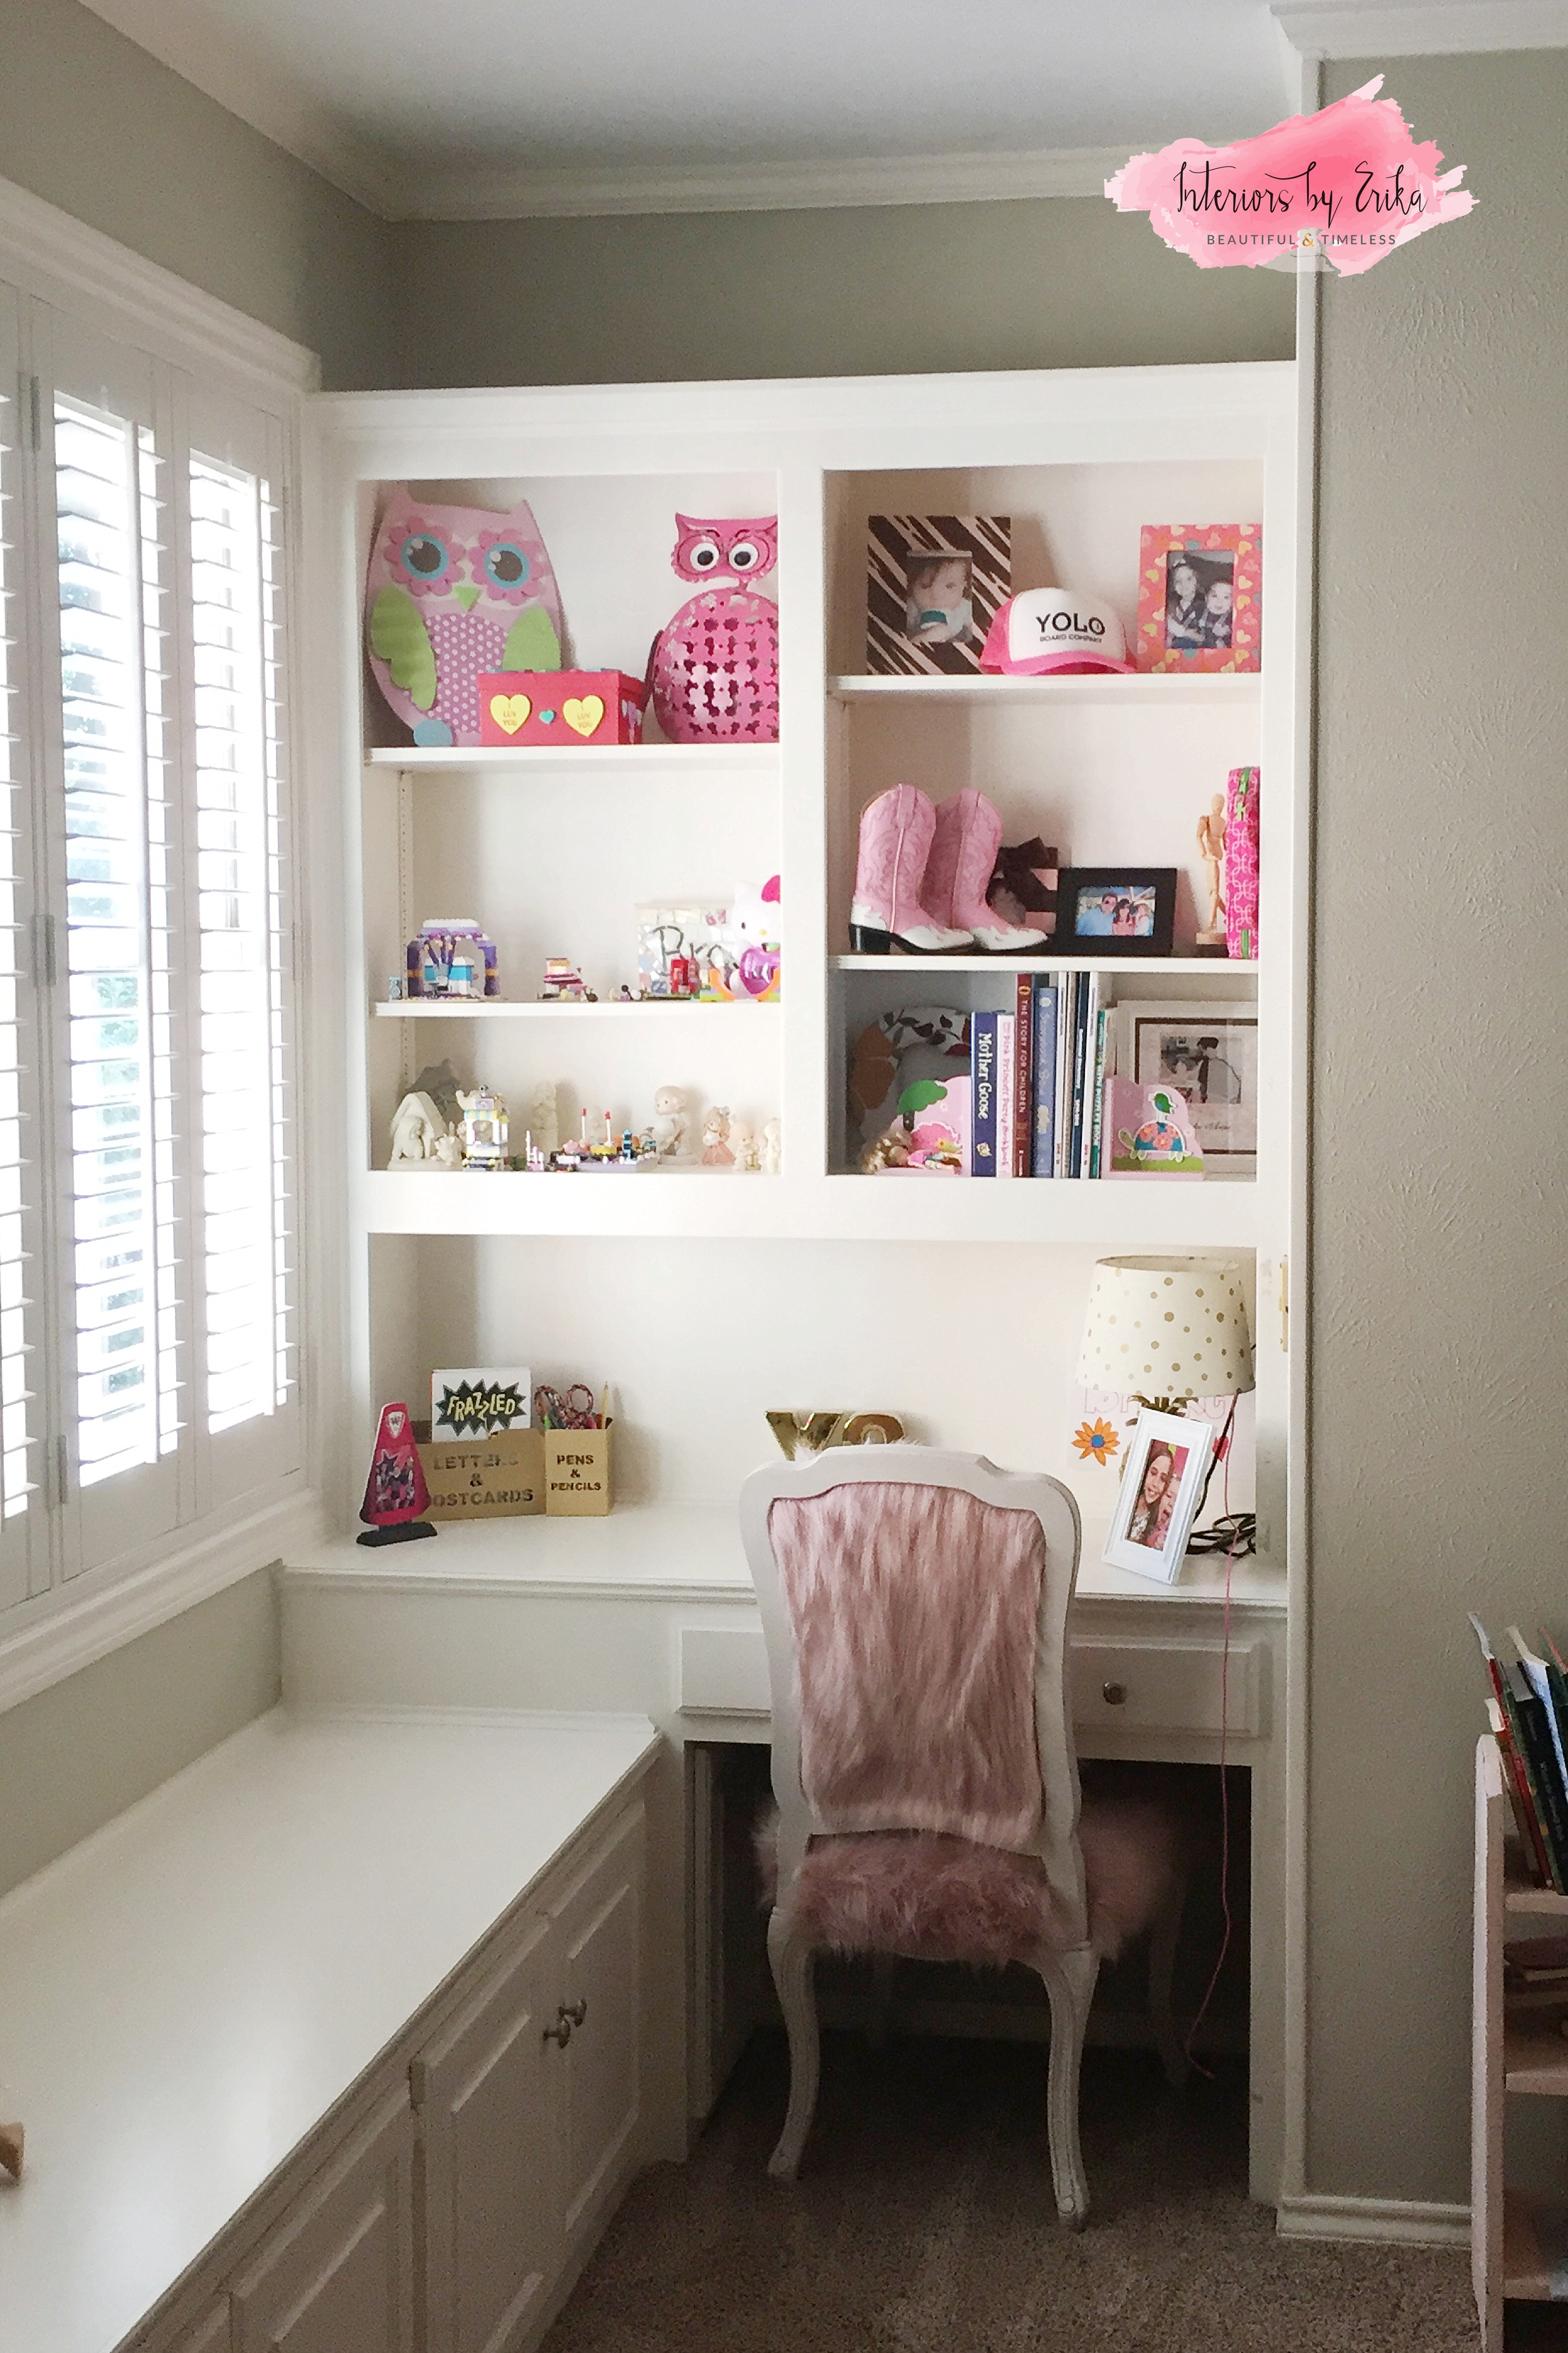 A Few Pops of Pink [Teen Girl Bedroom Decor] — Interiors by Erika